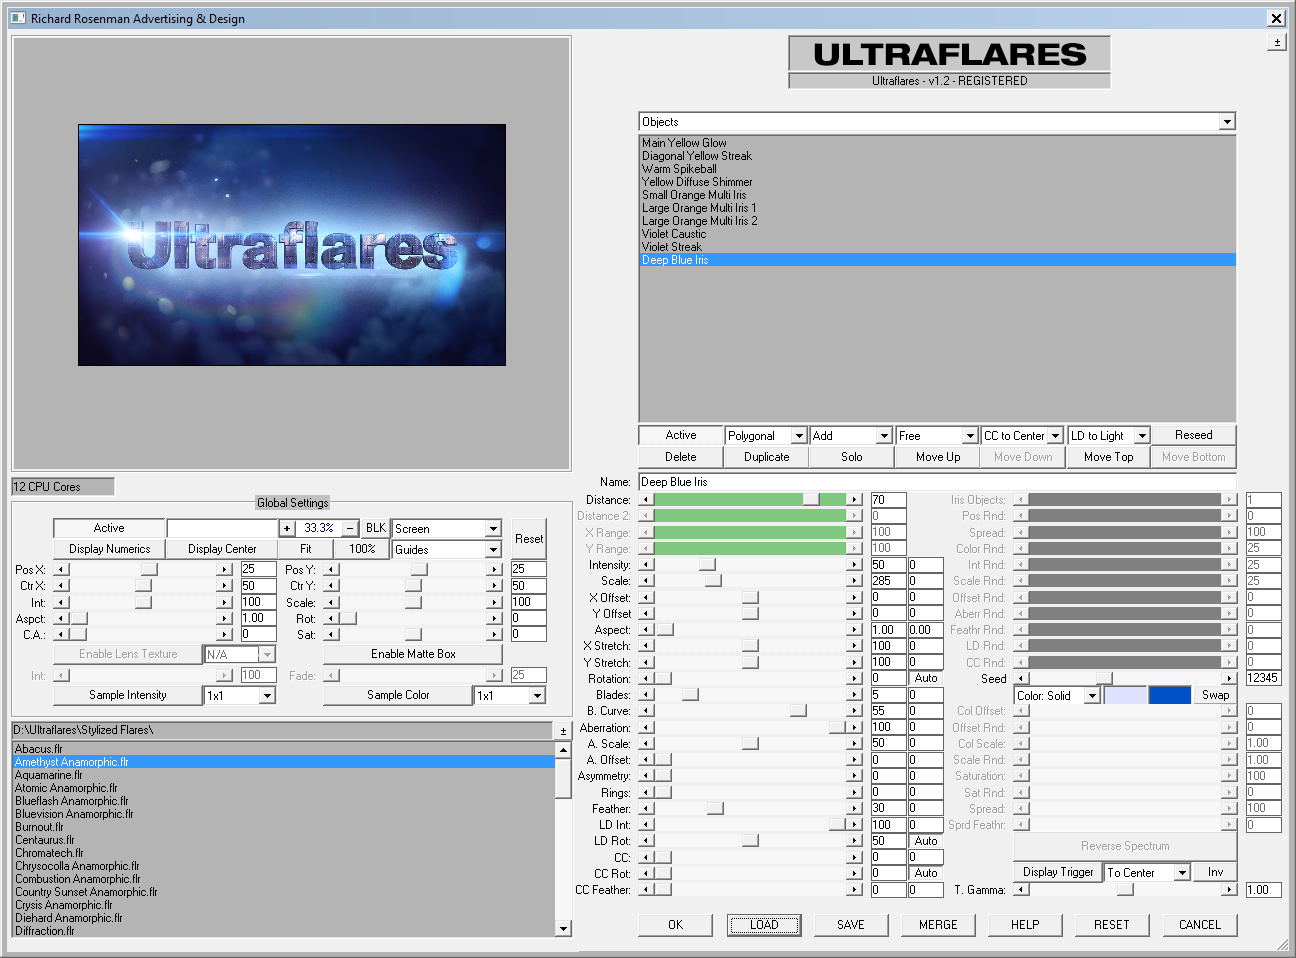 software_ultraflares_gui.png